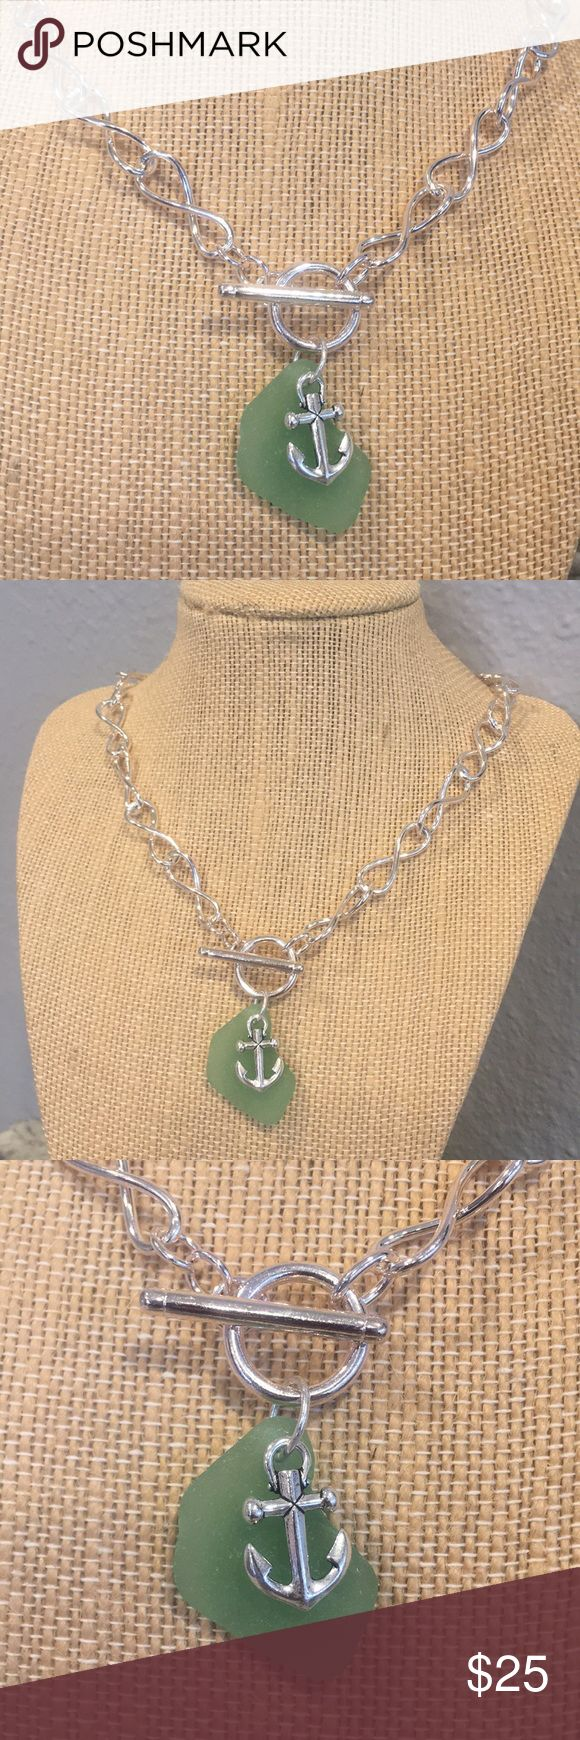 """Light Green Seaglass Silver  Toggle Necklace Figure 8 Toggle Necklace  Seaglass and Anchor Charms Seaglass is authentic seaglass found on the shores of Maui, Hawaii  Necklace and anchor charm are both silver plate Length of necklace: 18"""" Summer, beach, mermaid, sea glass, jewelry Poseidons Treasure Jewelry Necklaces"""